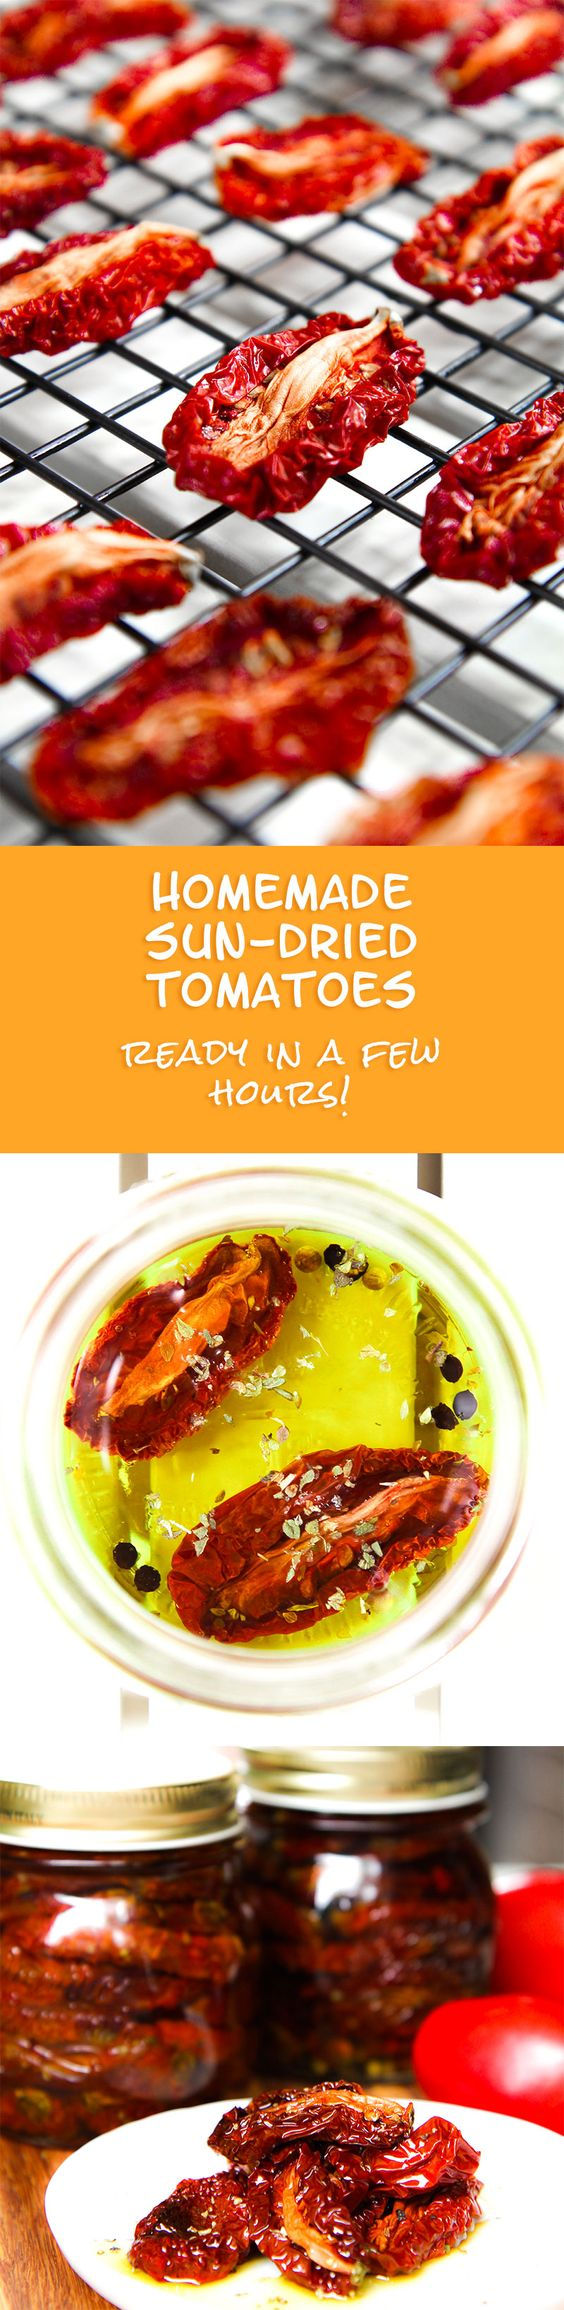 homemade sun-dried tomatoes recipe To prepare dried tomatoes in the ...